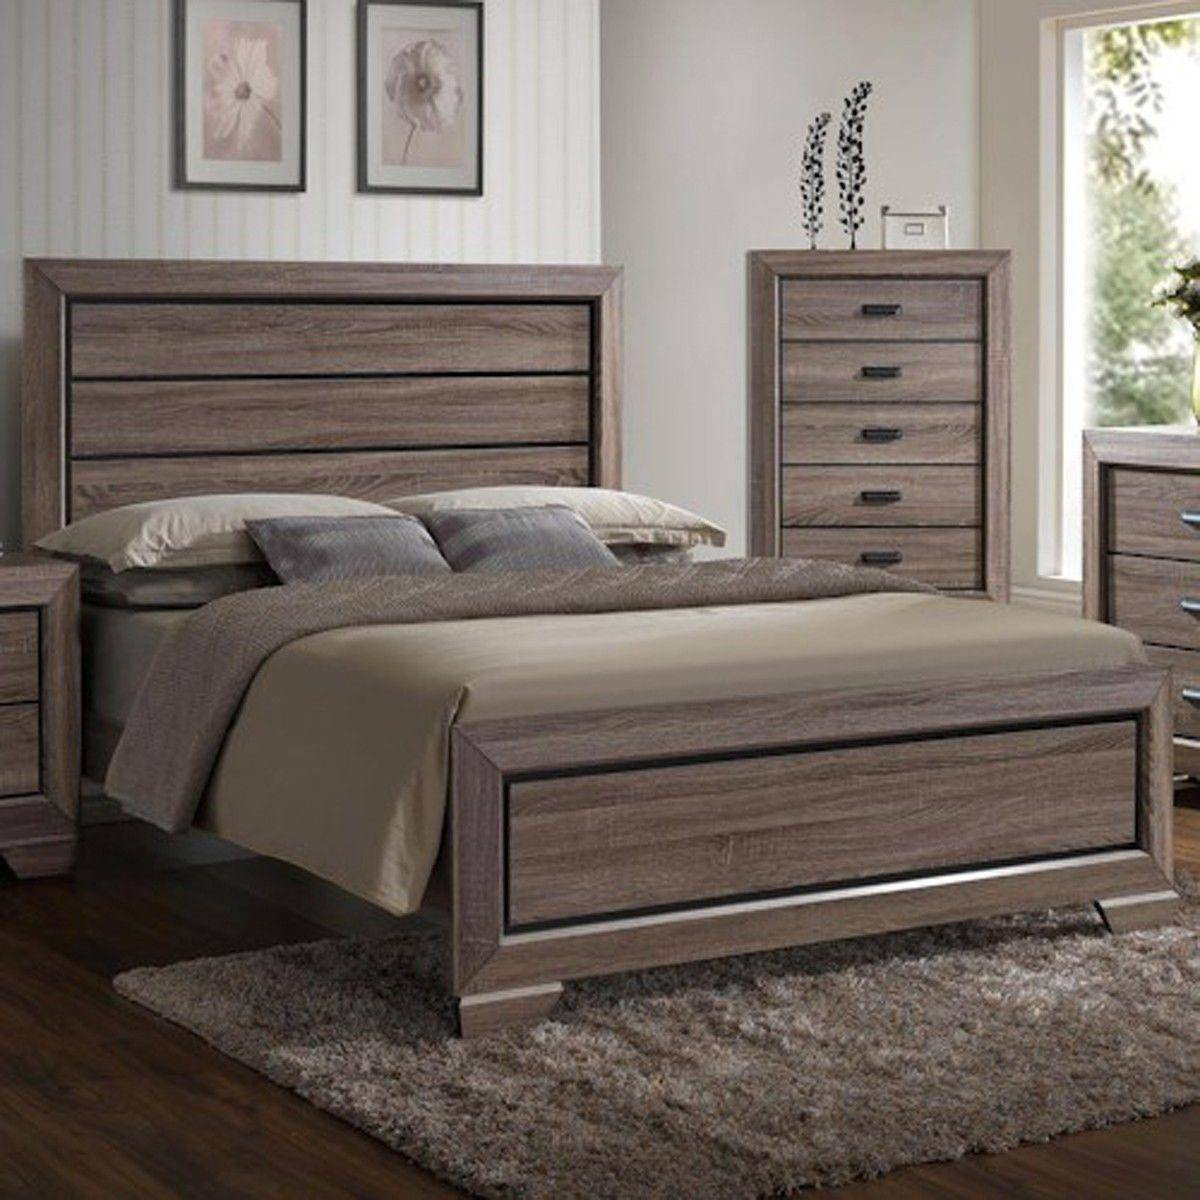 Bedroom Colors with Brown Furniture Inspirational Crown Mark B5500 Farrow Grey Brown Finish solid Wood Queen